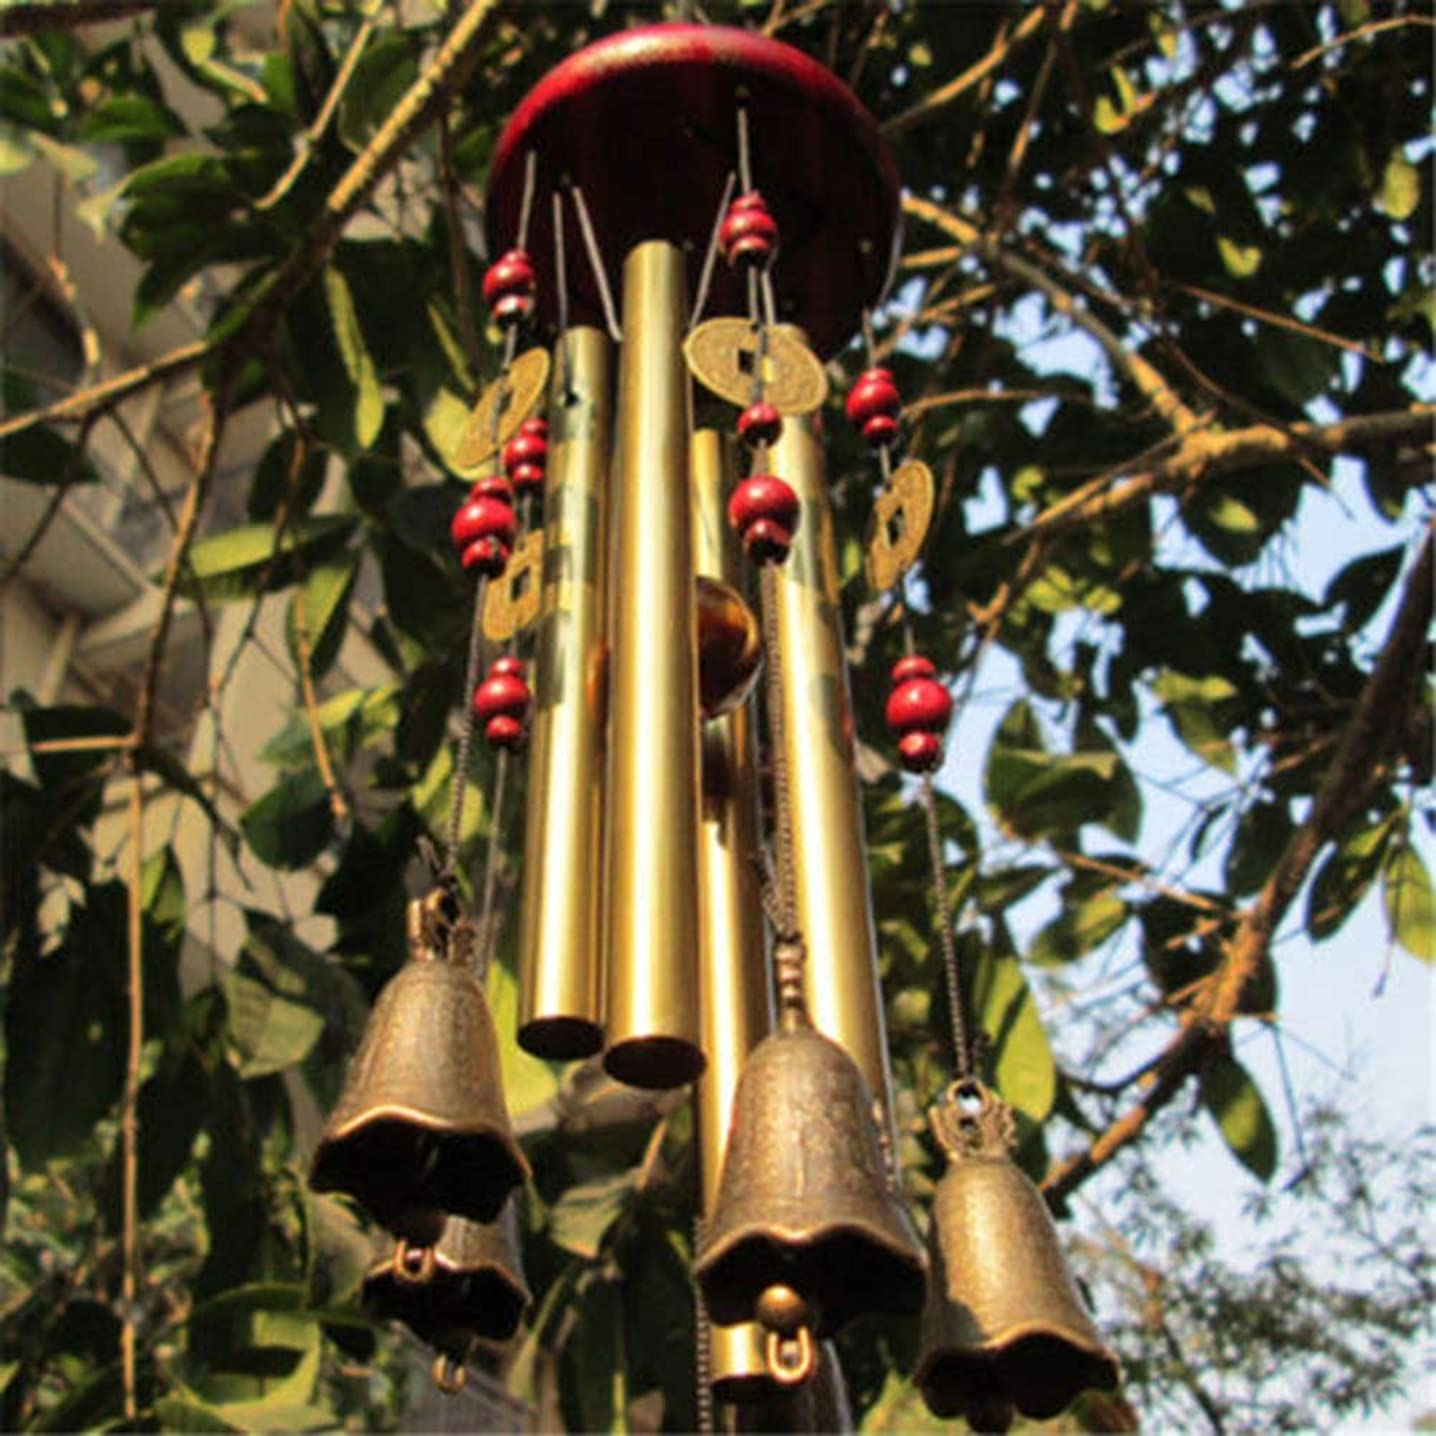 Wind Chimes - Outdoor Metal Yard Garden 4 Tubes Copper Bell Window Bells Wall Hanging Decorations Home Decor